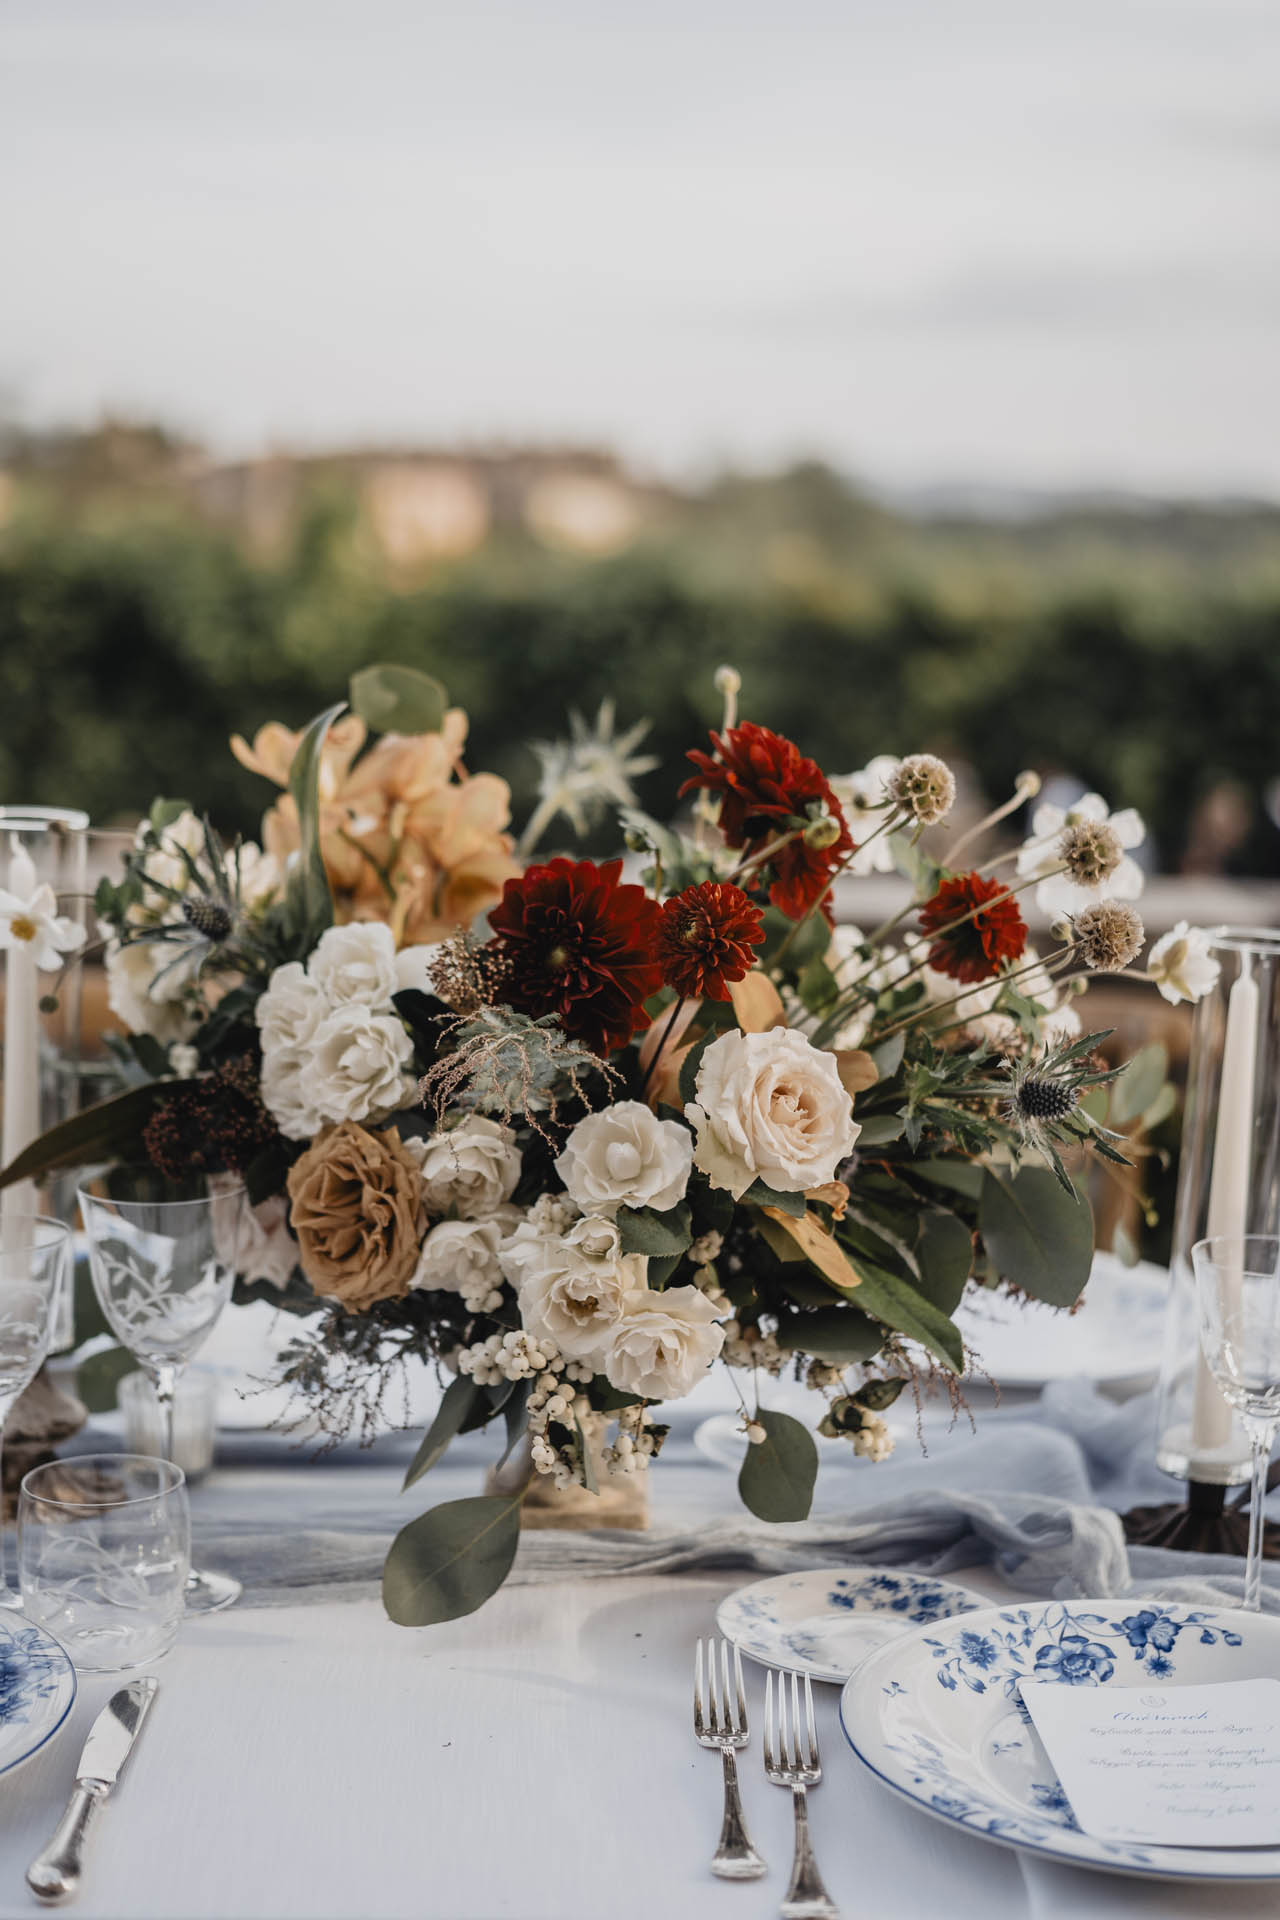 - 59 :: Intimate elegance: an intimate wedding at Il Borro :: Luxury wedding photography - 58 ::  - 59